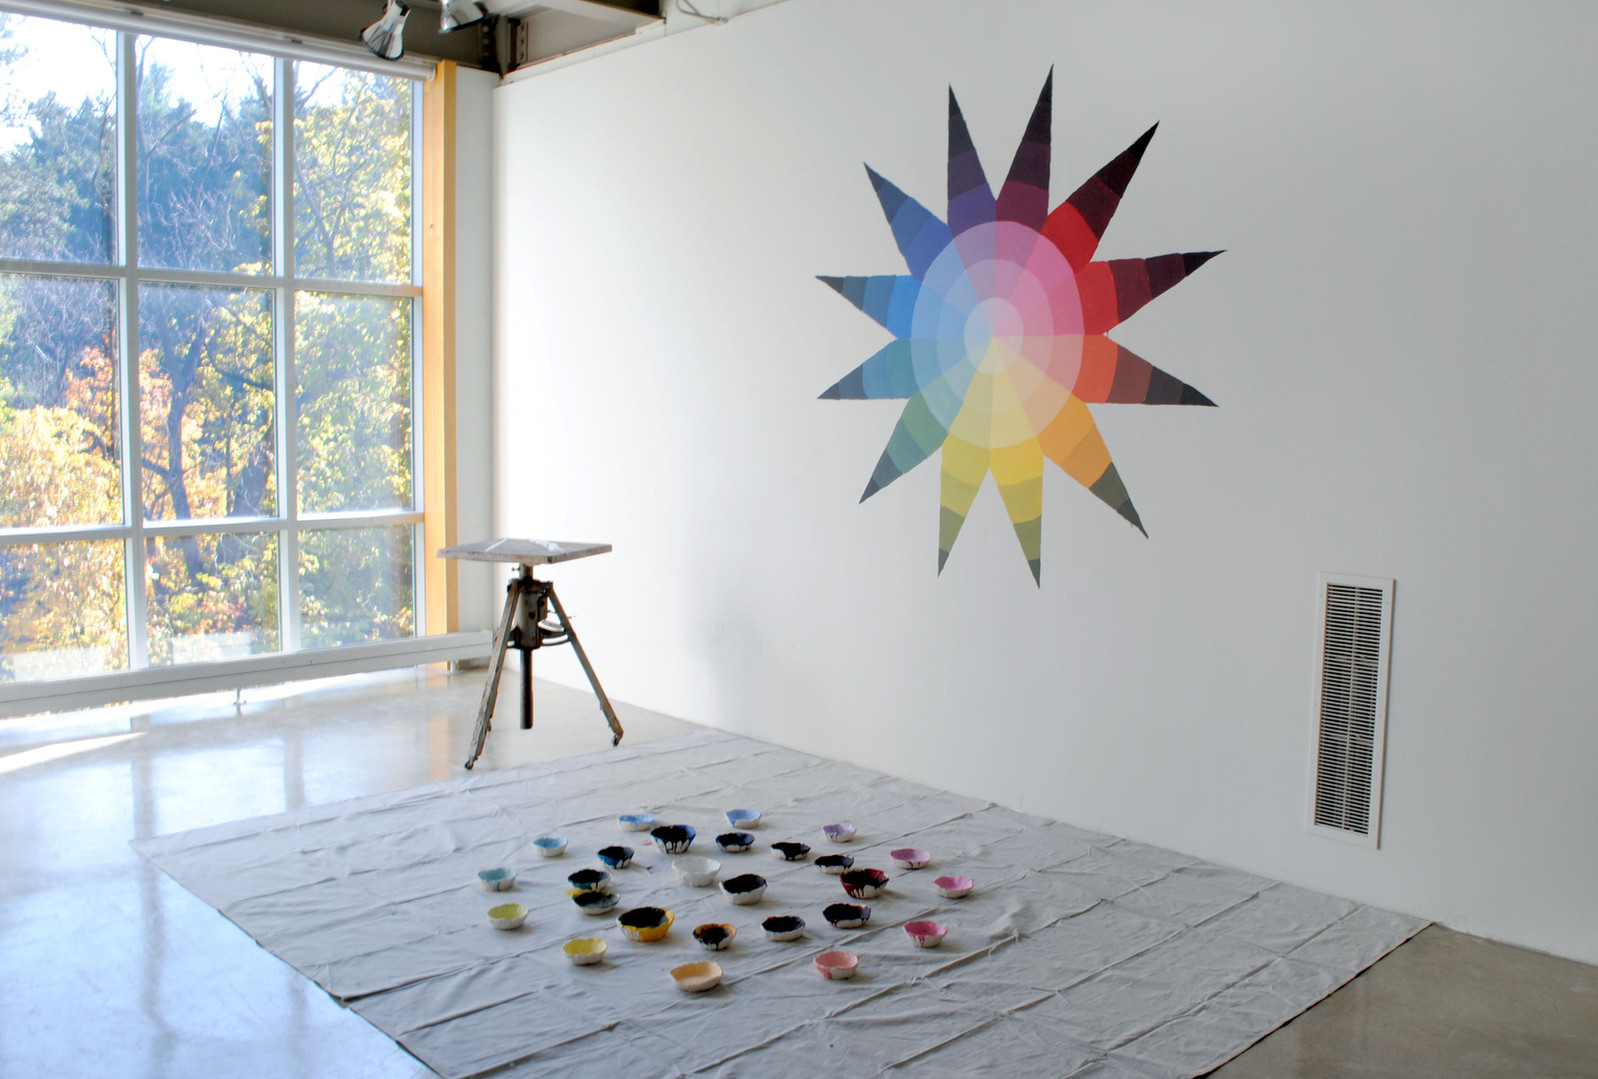 The Color Wheel of Johannes Itten